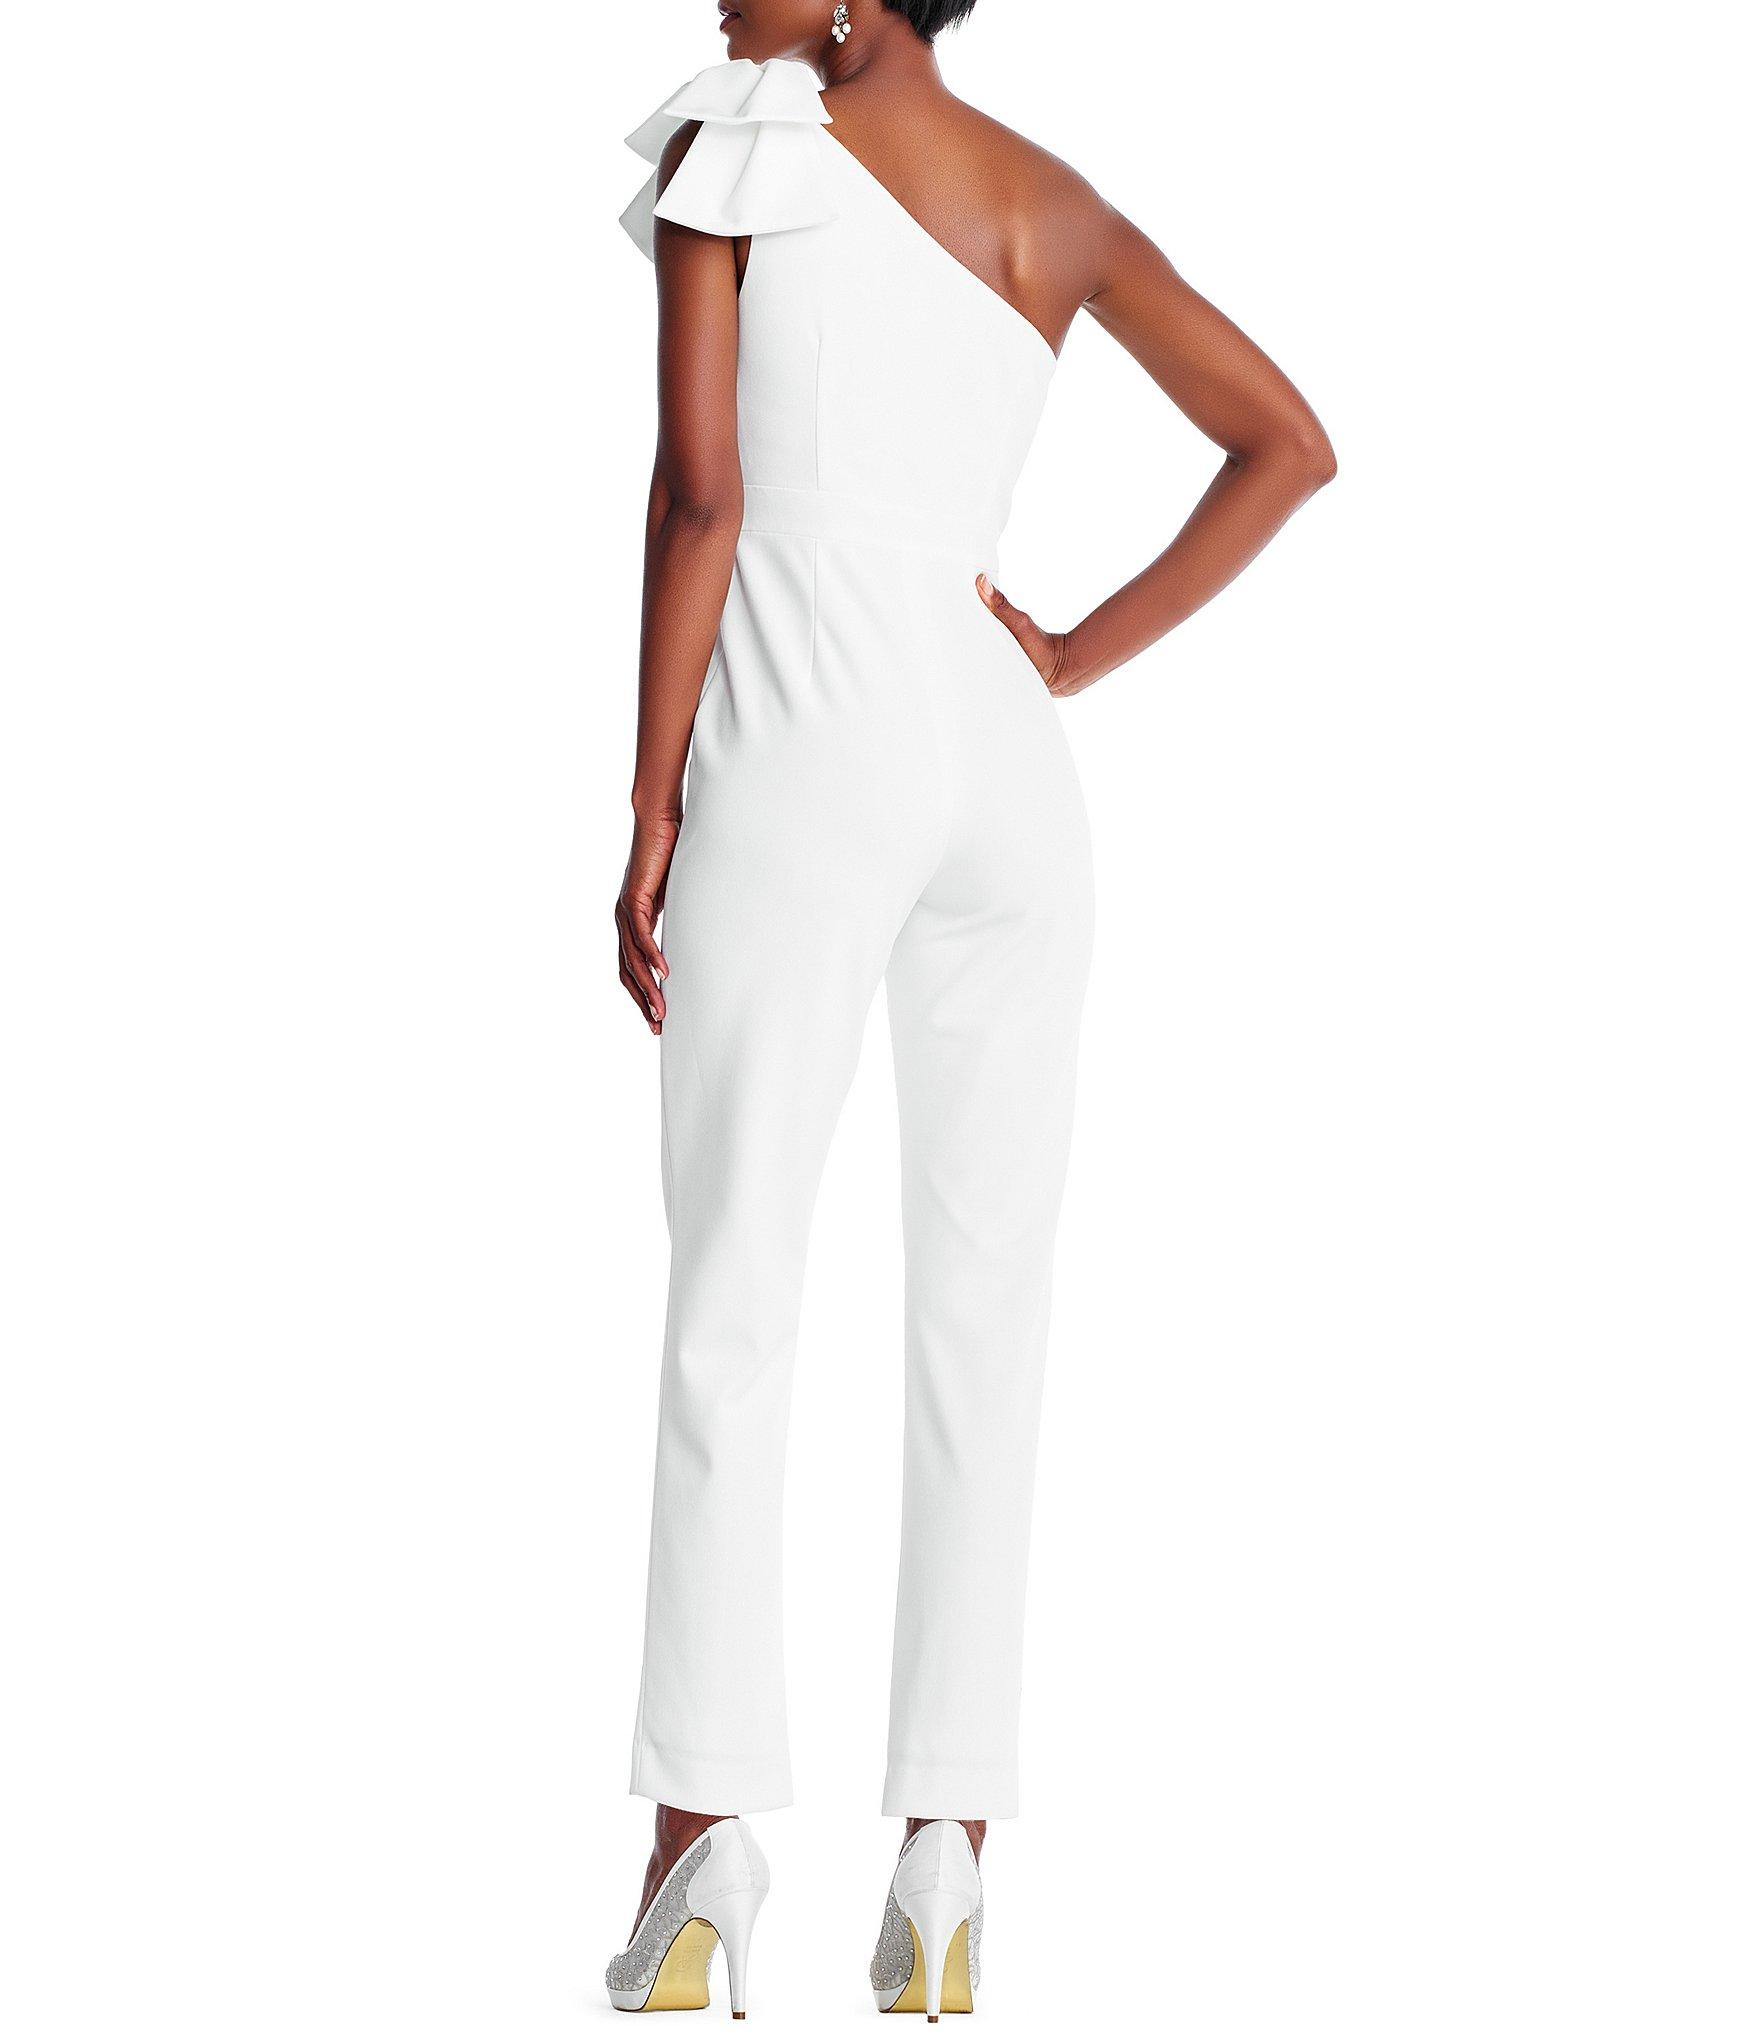 85185361bef Adrianna Papell - White Petite Size One-shoulder Bow Jumpsuit - Lyst. View  fullscreen